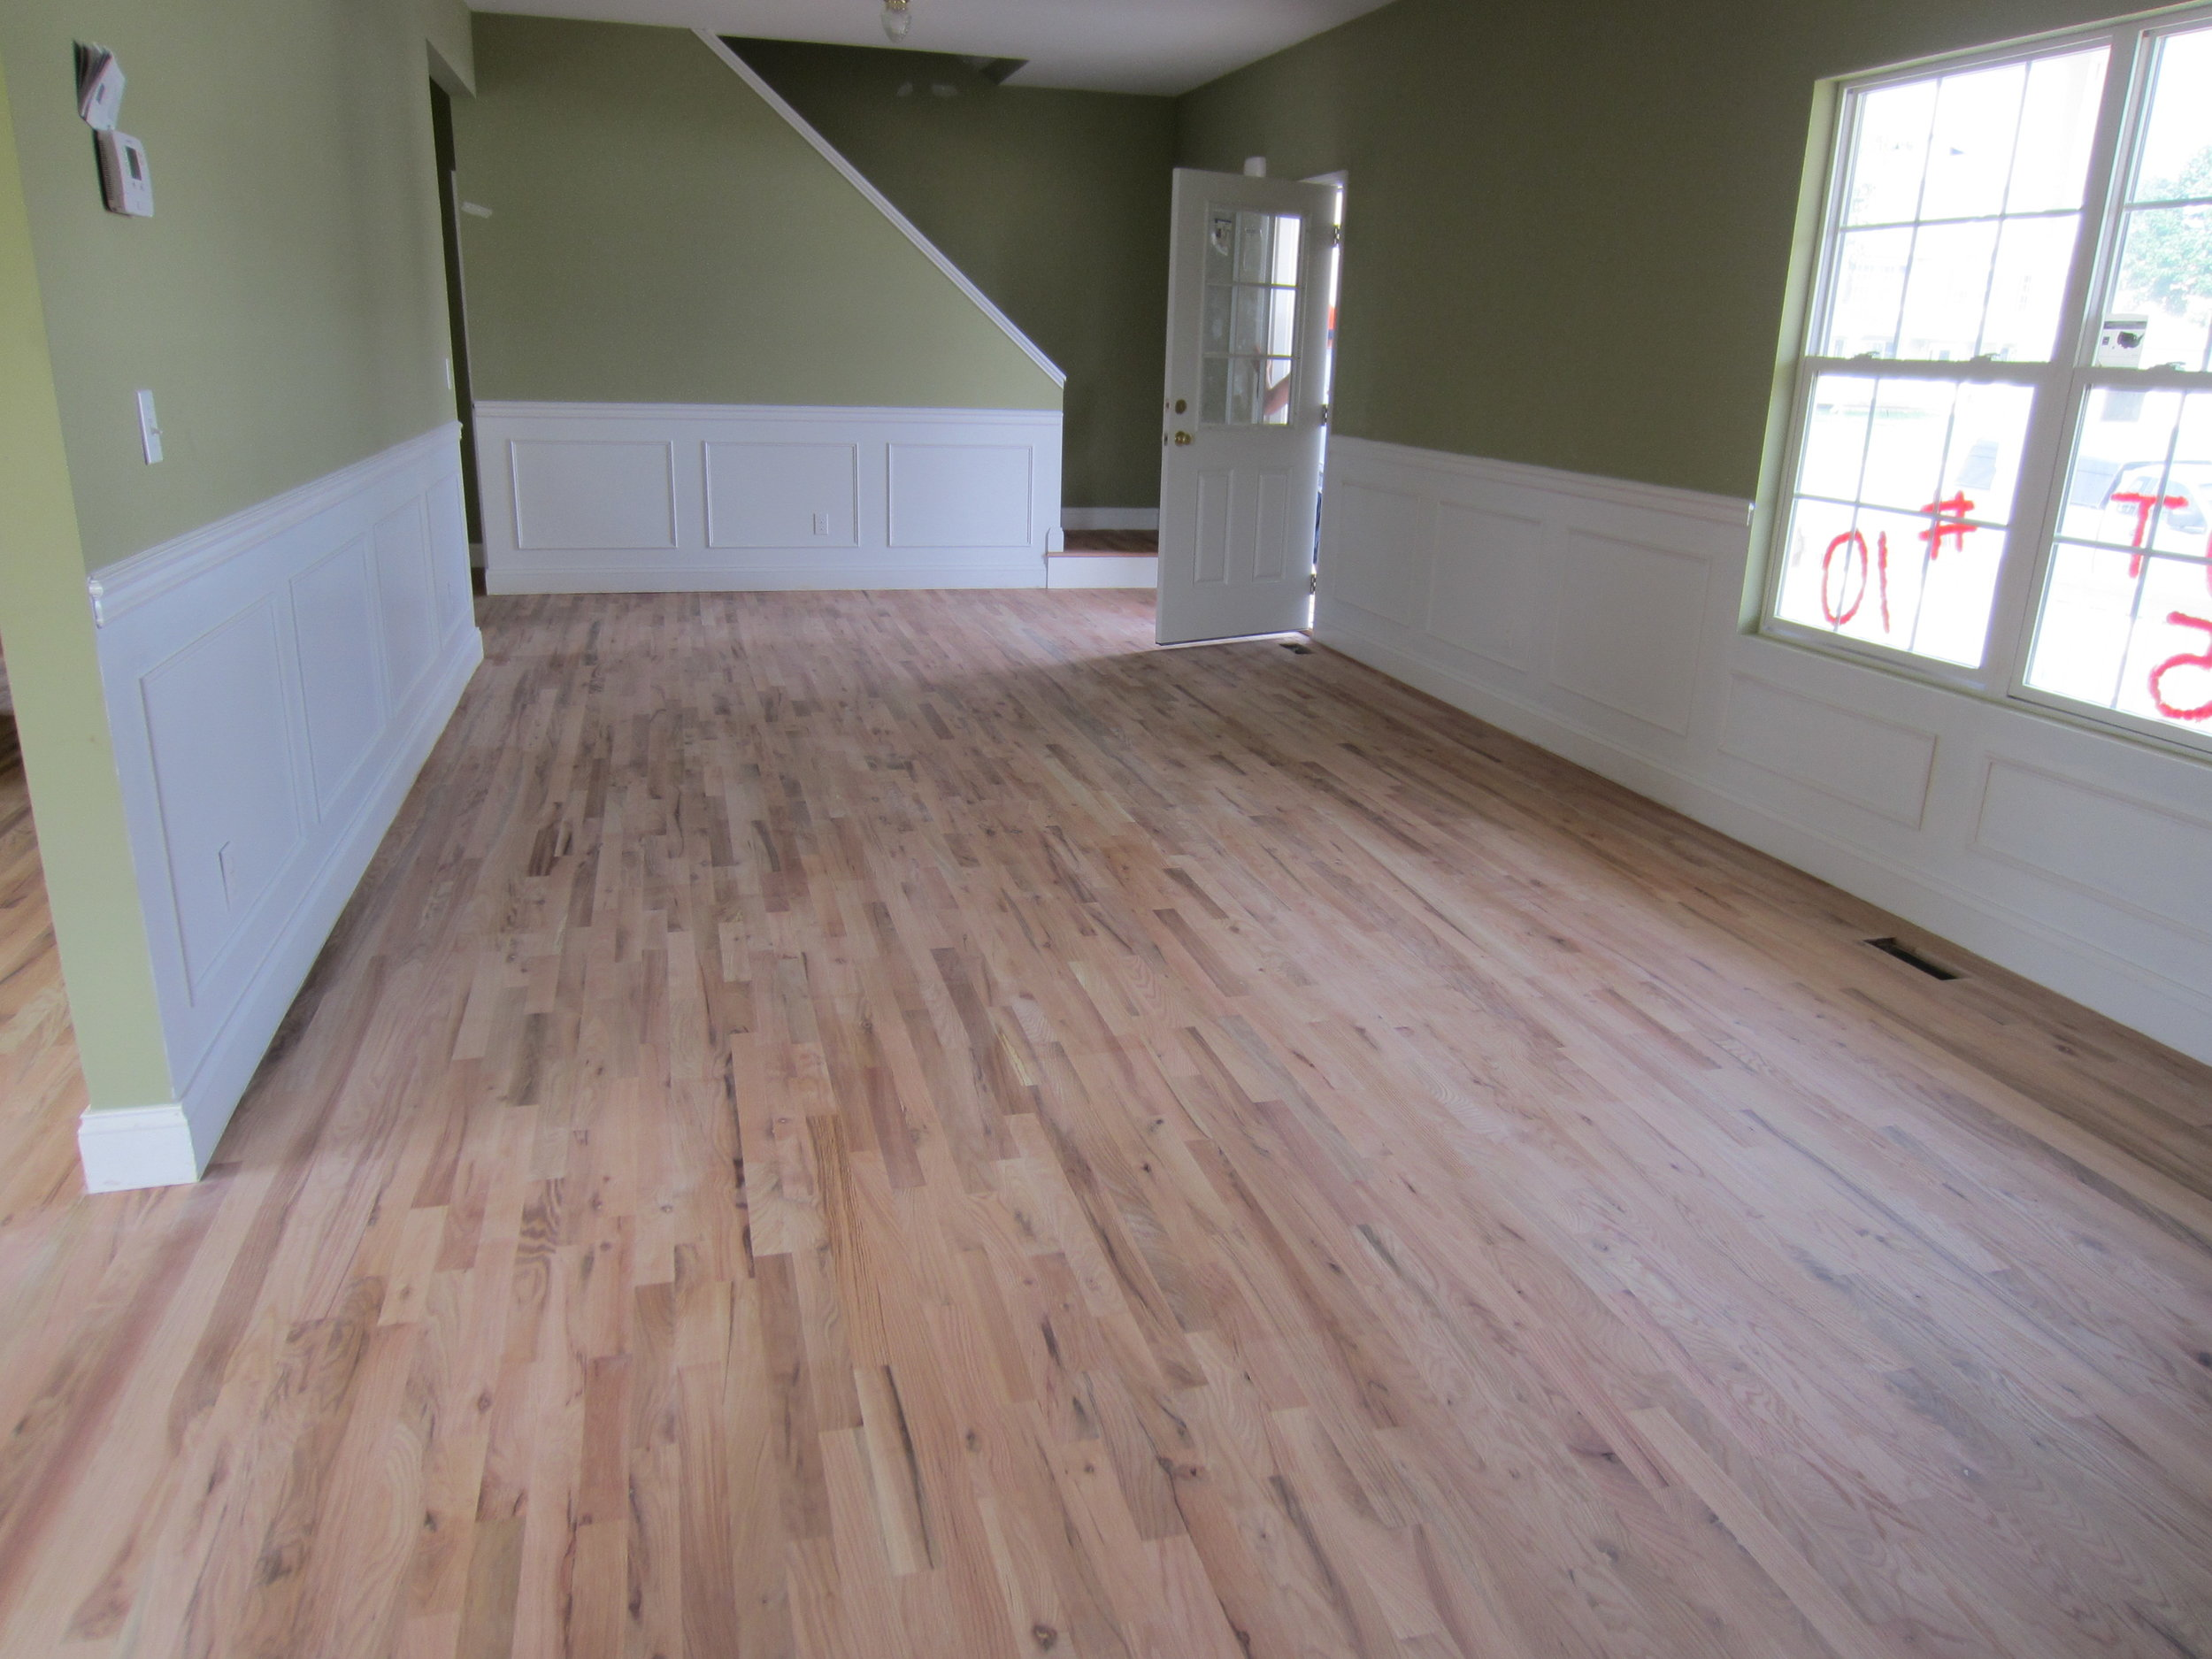 Hardwood floor refinishing project how long does it take valenti hardwood floor refinishing project how long does it take valenti flooring solutioingenieria Gallery